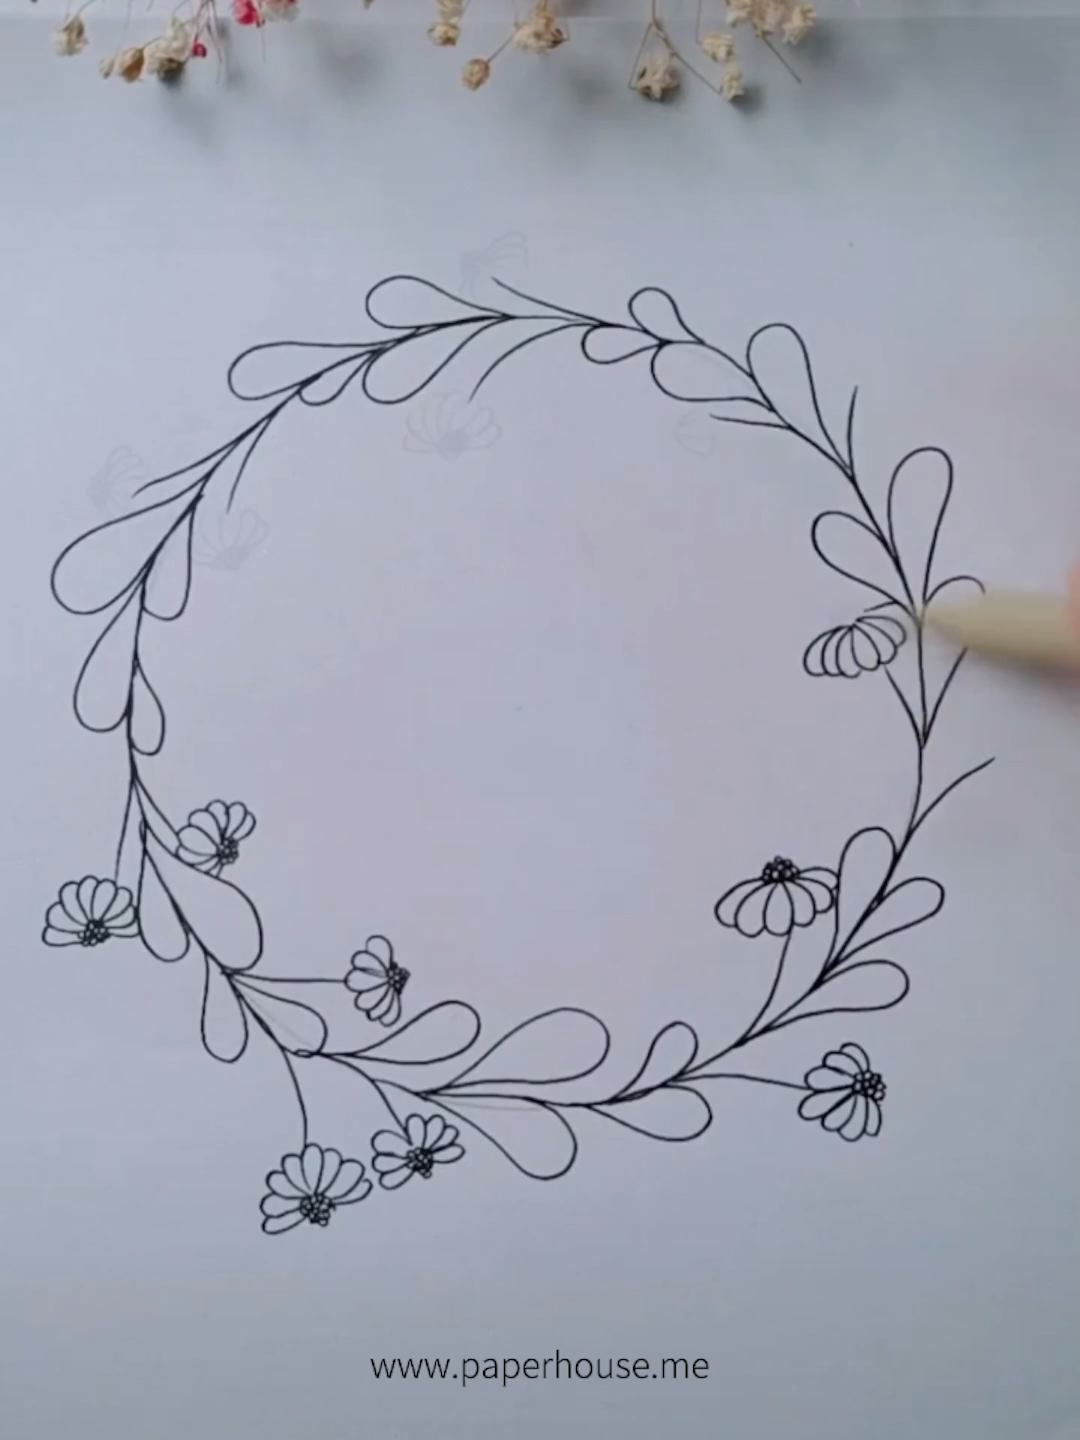 """Bujo Wreath Doodles�www.paperhouse.me�Get $3 with code """"PIN3""""�Paperhouse Stationery"""